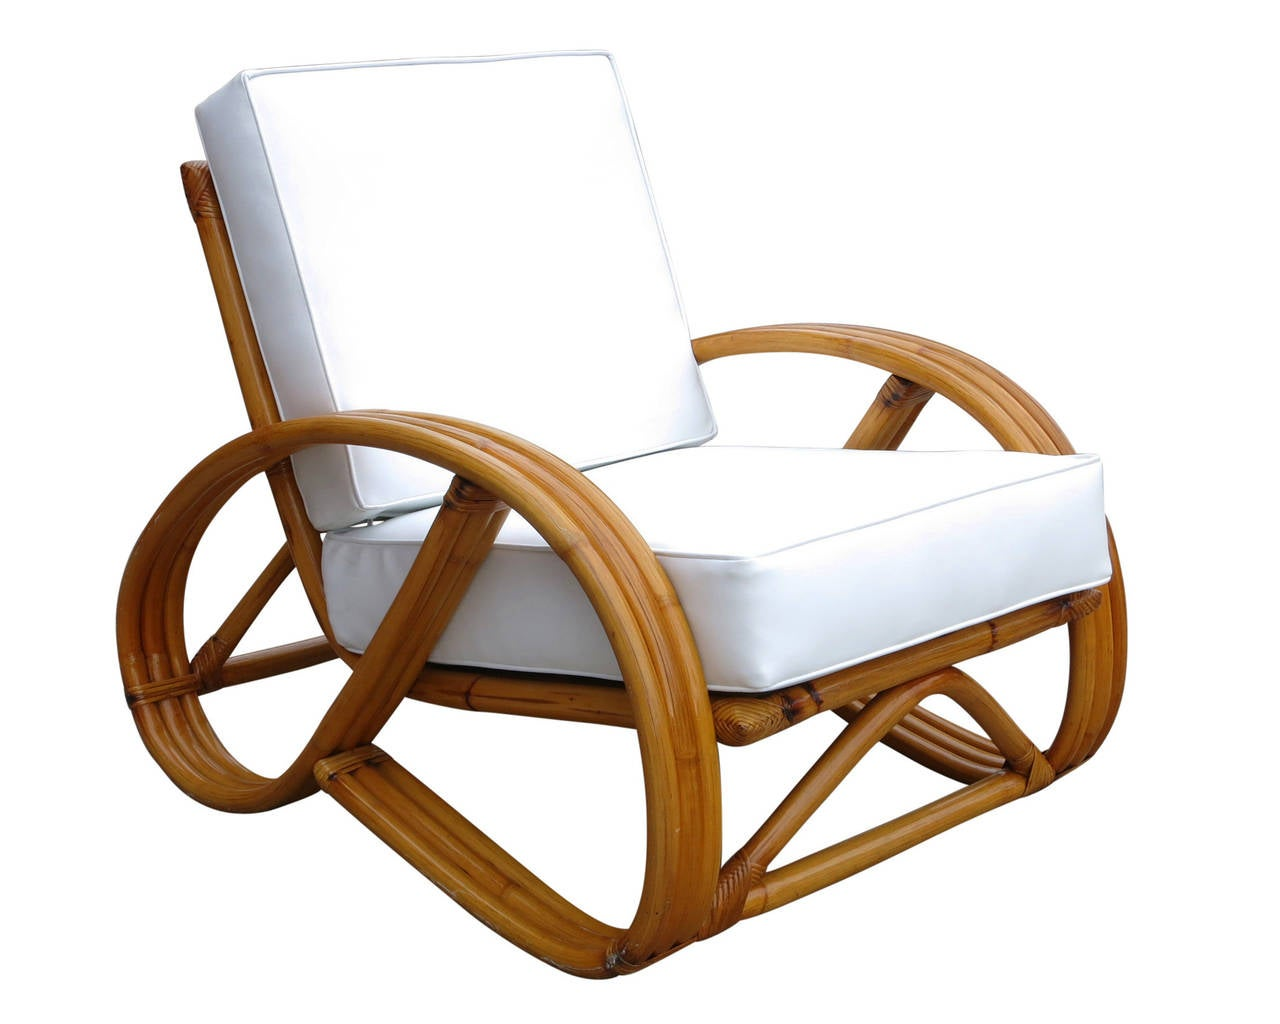 Pretzel Chair 3 4 Round Pretzel Rattan Lounge Chair With Ottoman At 1stdibs